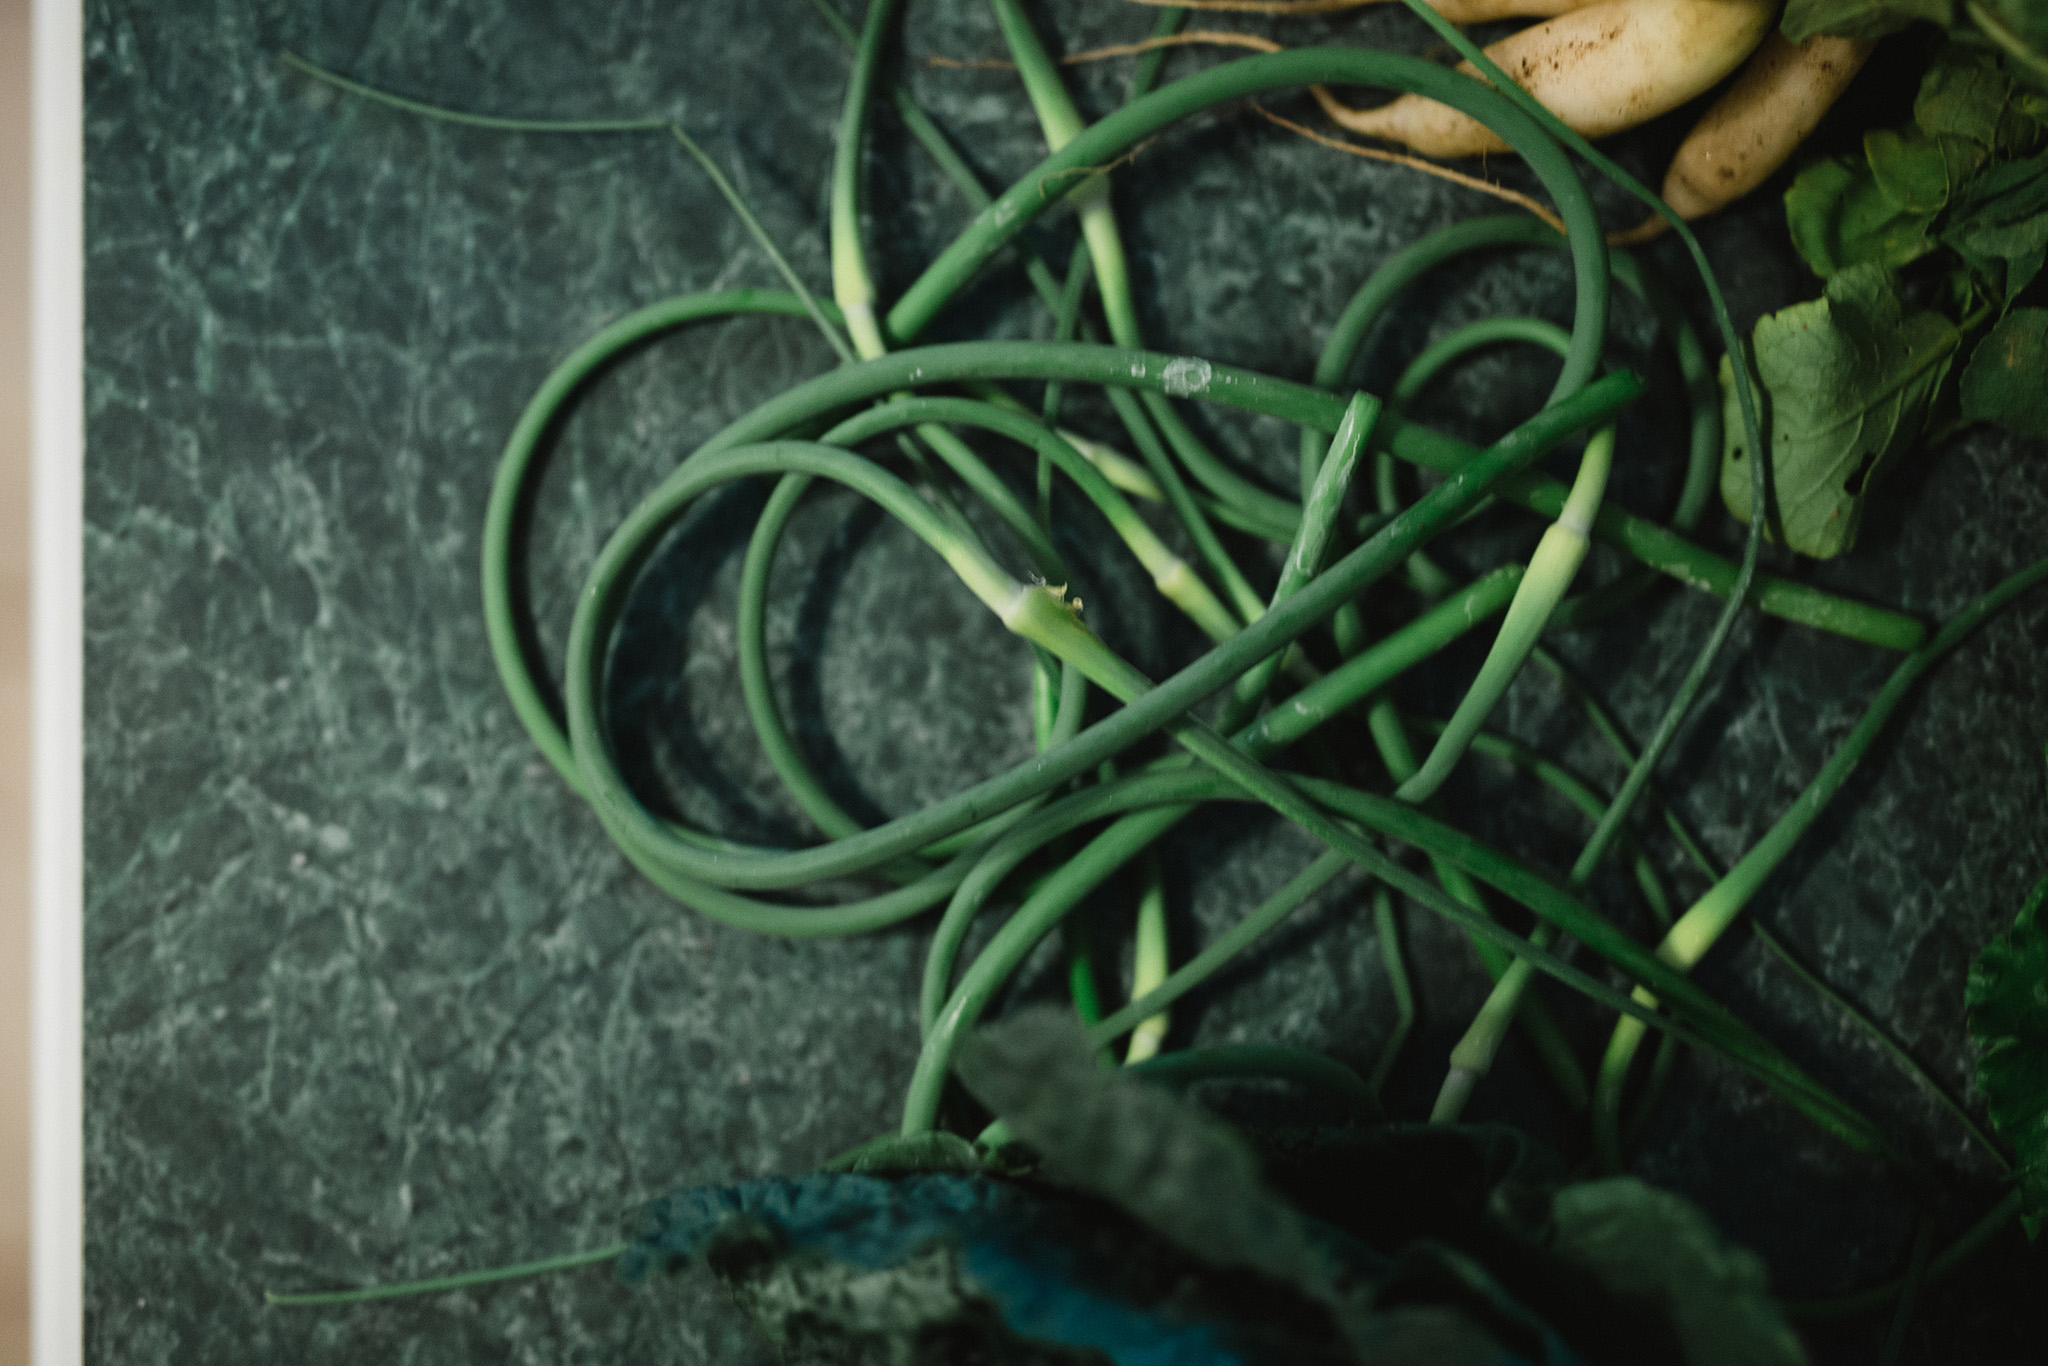 June 22: We joined a CSA and learned to cook with scapes.